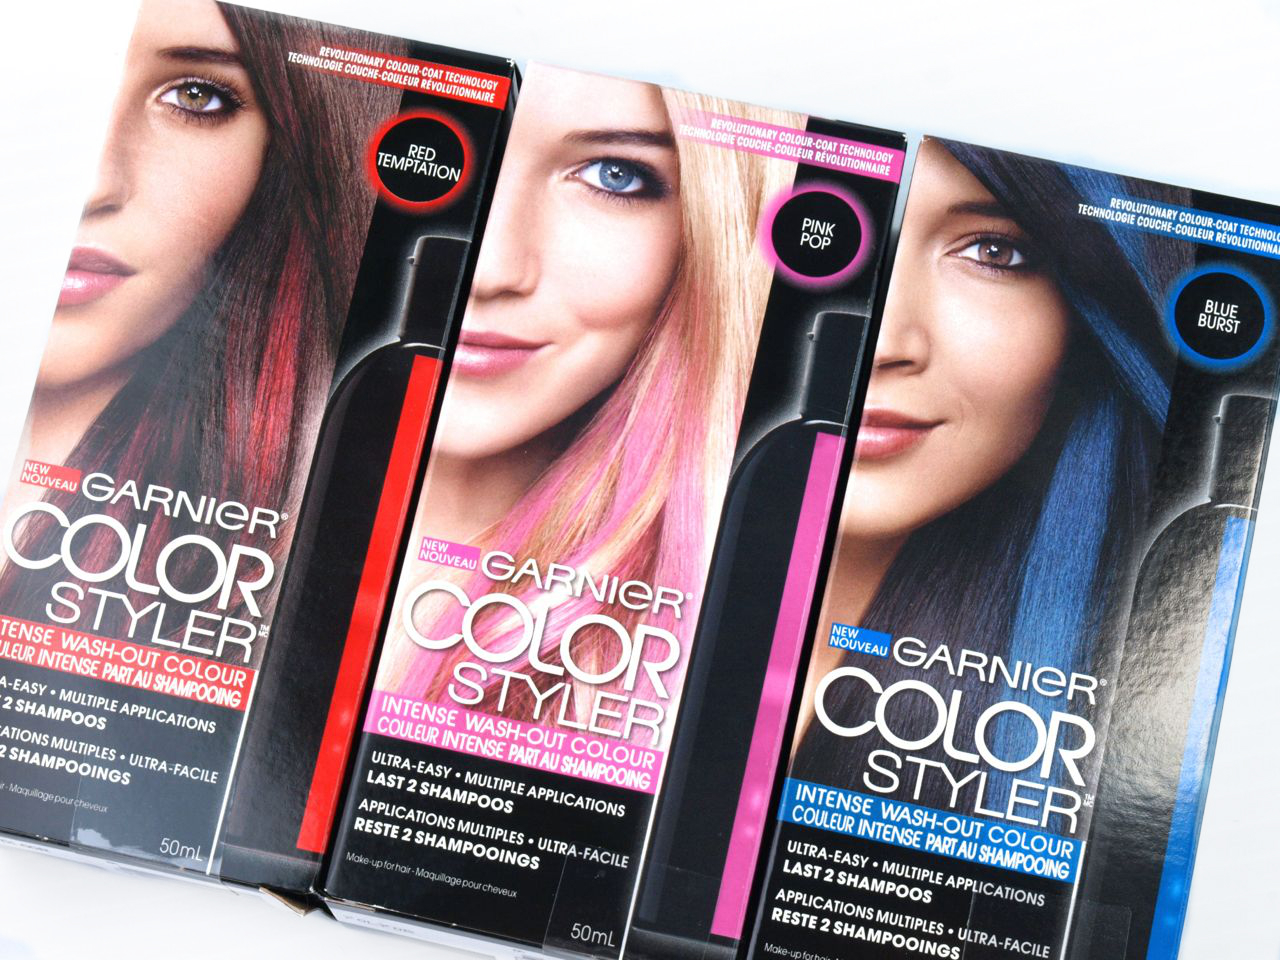 Garnier Color Styler Intense Wash-Out Color: Review